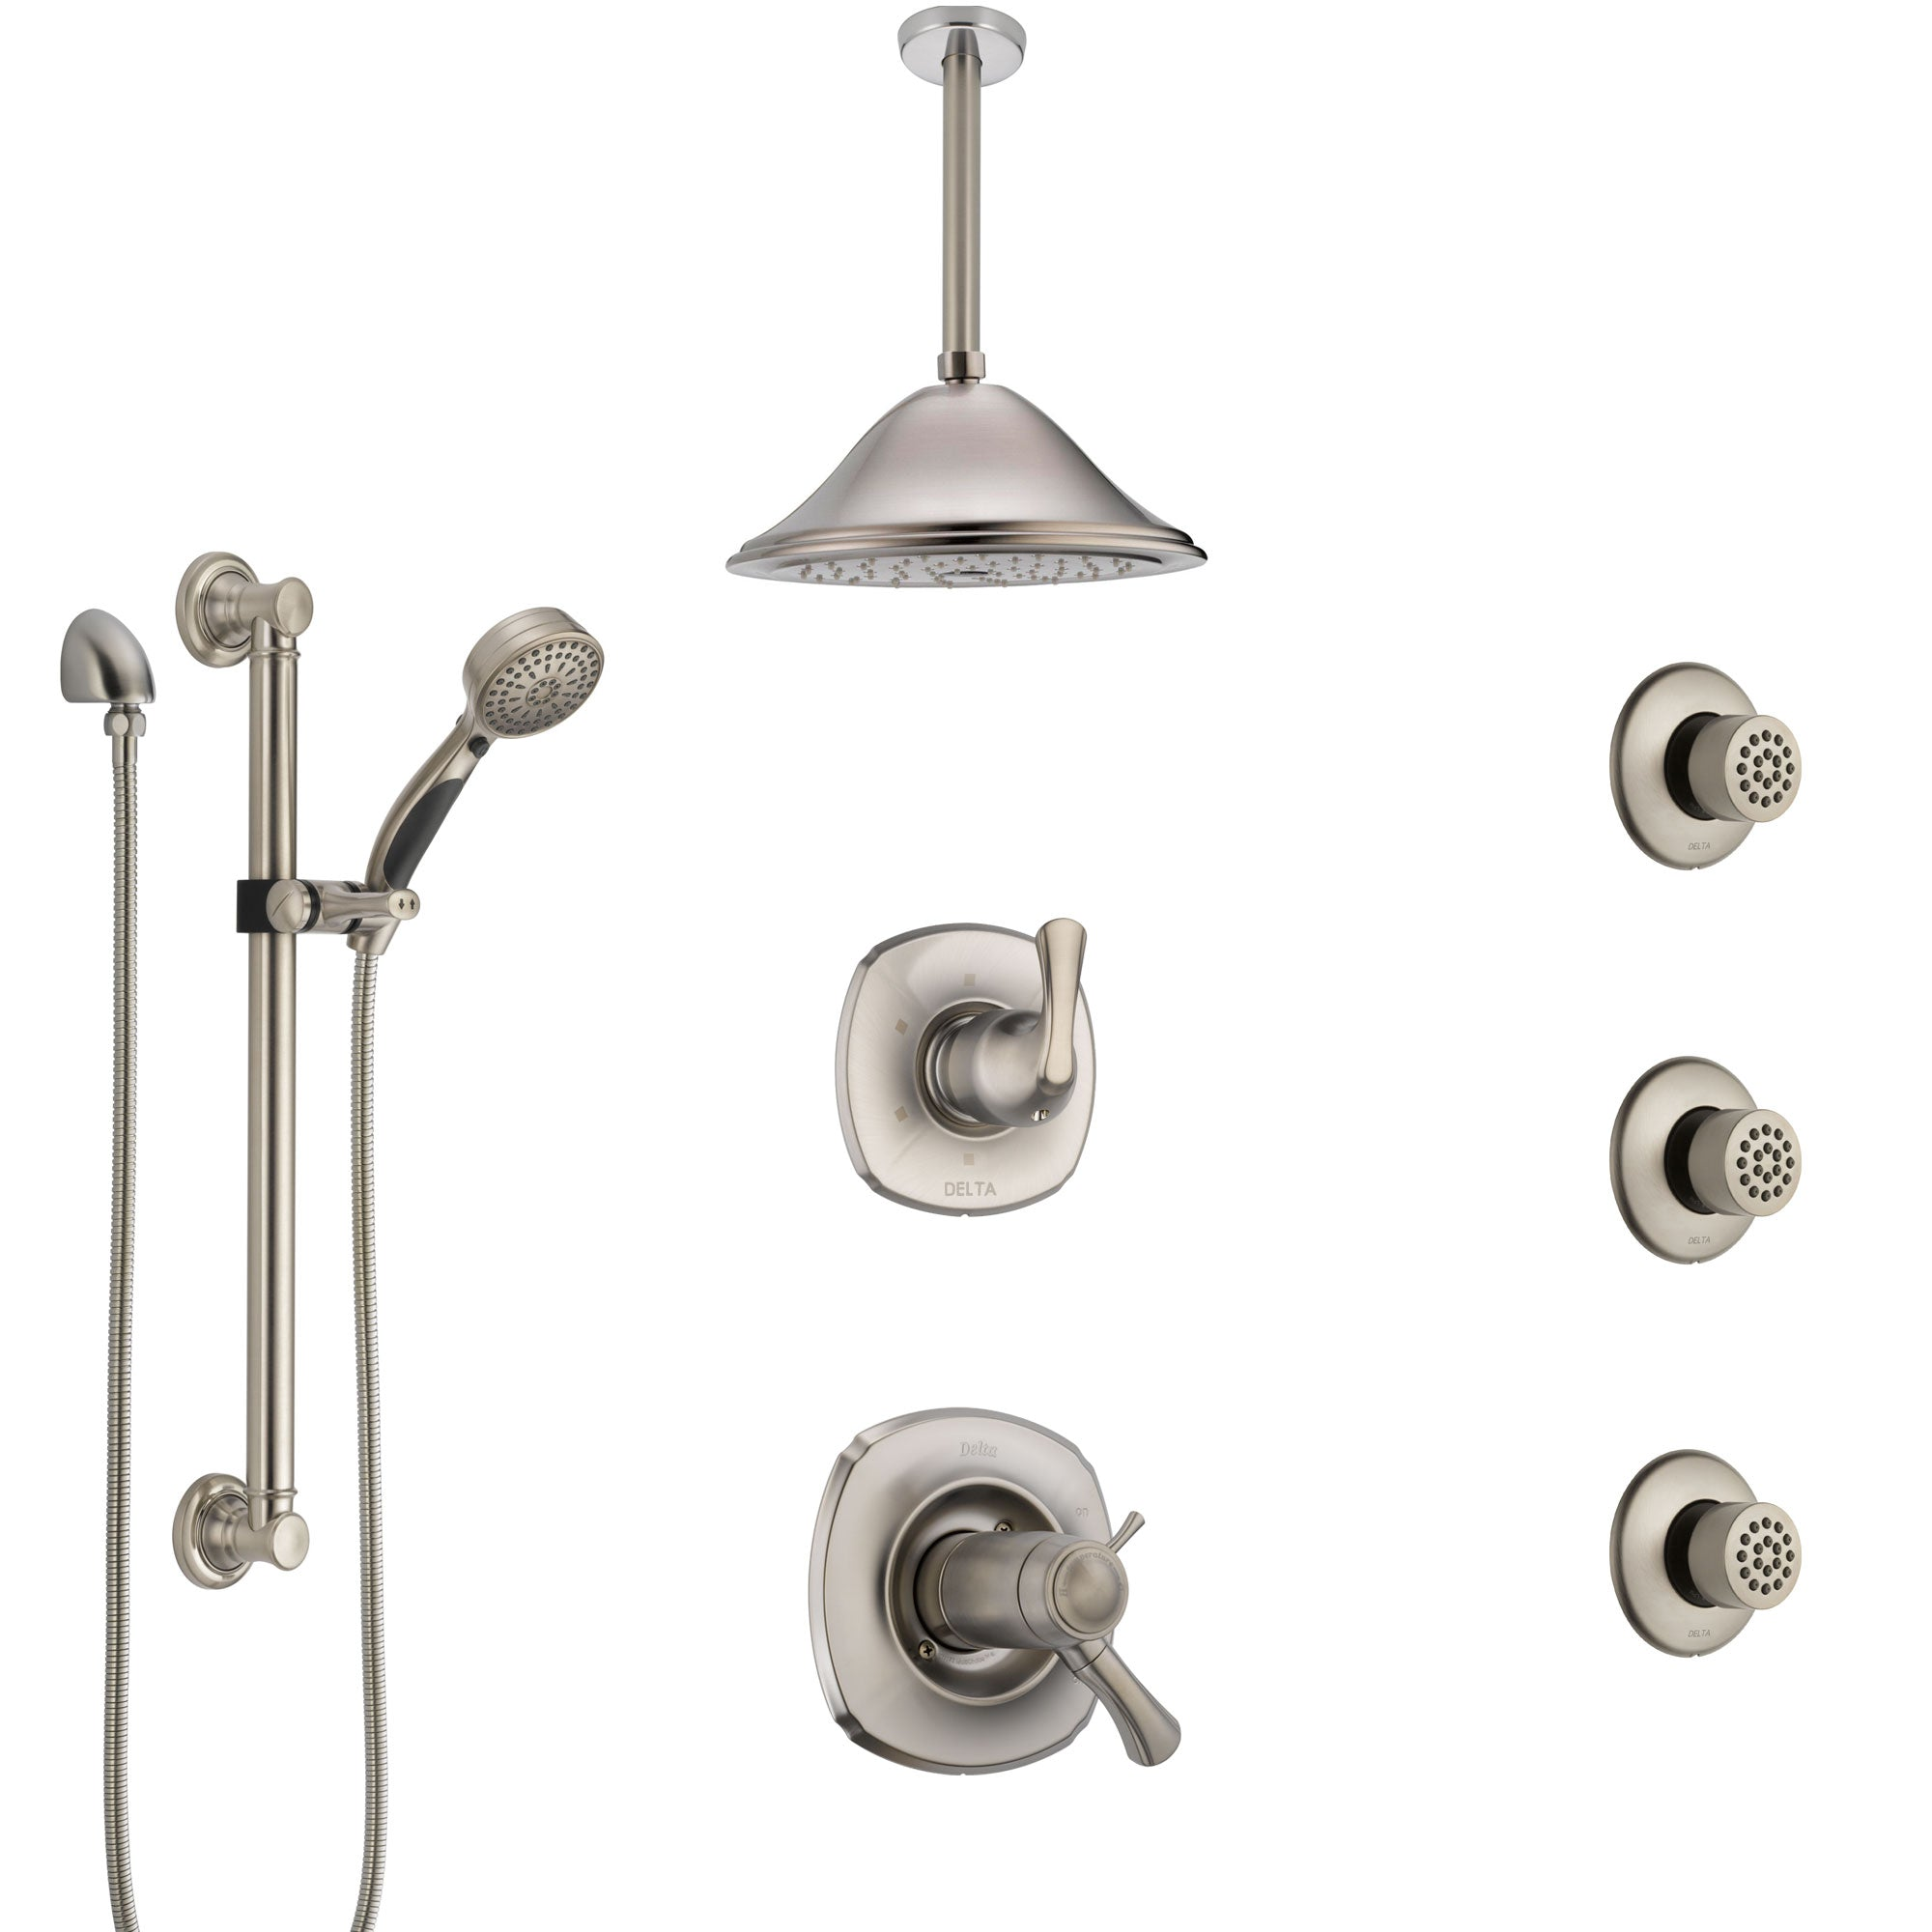 Delta Addison Dual Thermostatic Control Stainless Steel Finish Shower System with Ceiling Showerhead, 3 Body Jets, Grab Bar Hand Spray SS17T922SS4